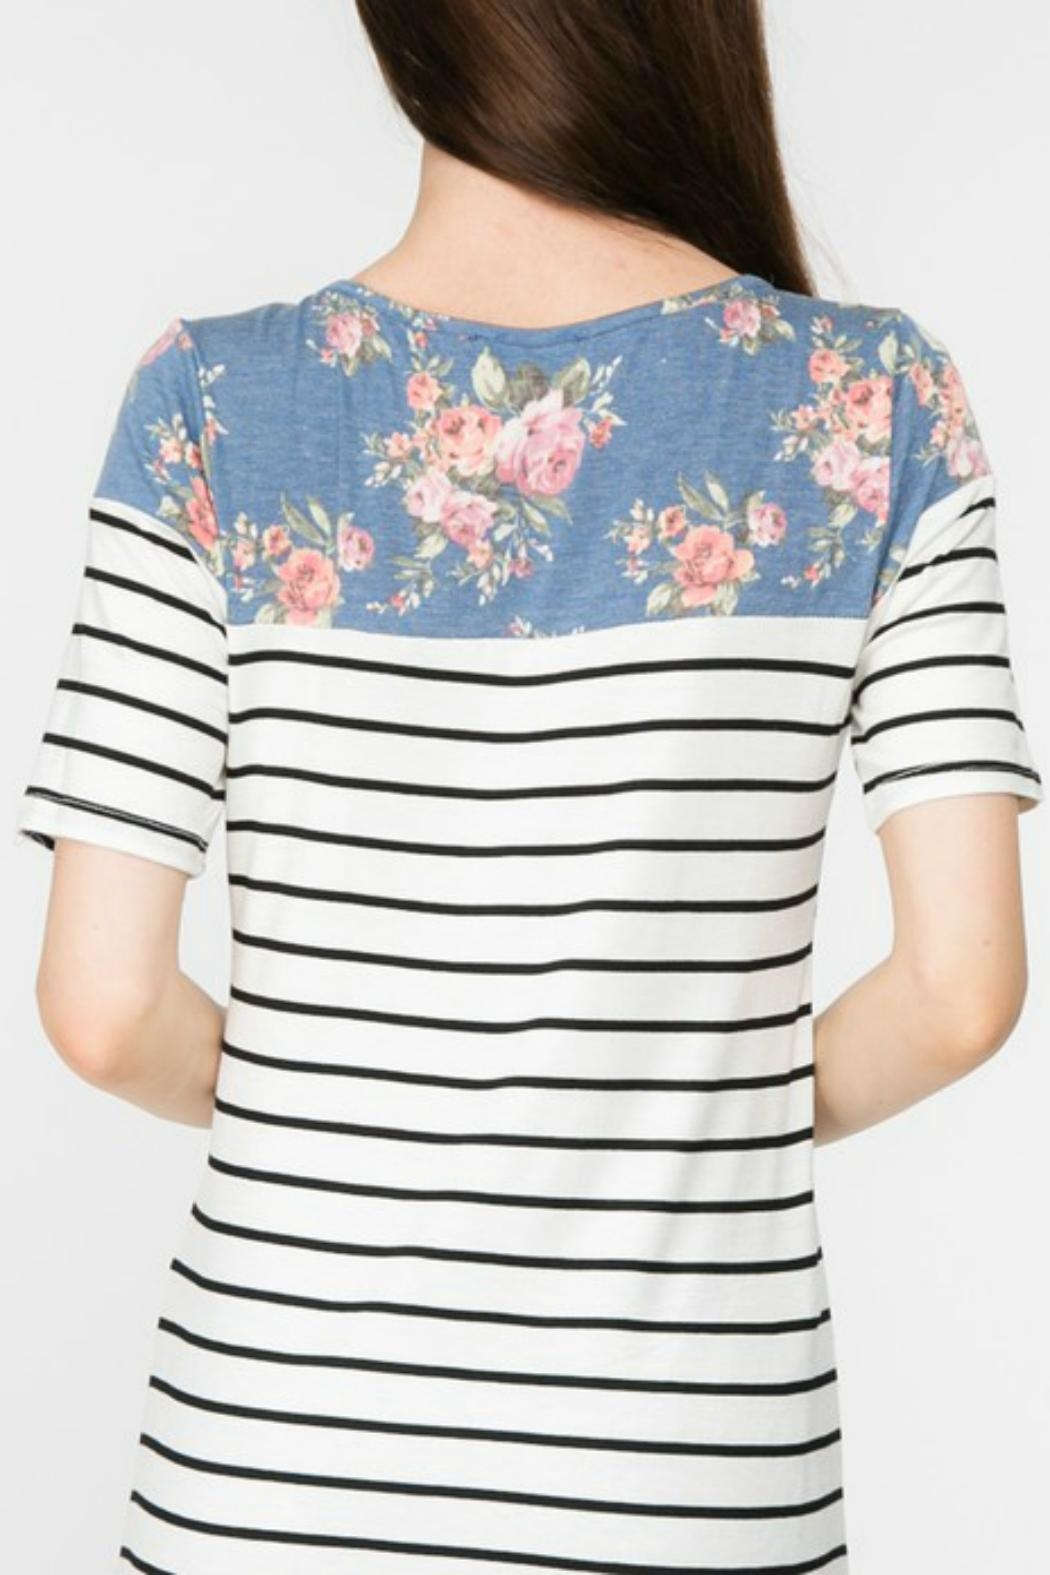 Adora Flowers-And-Stripes Long Tee - Side Cropped Image